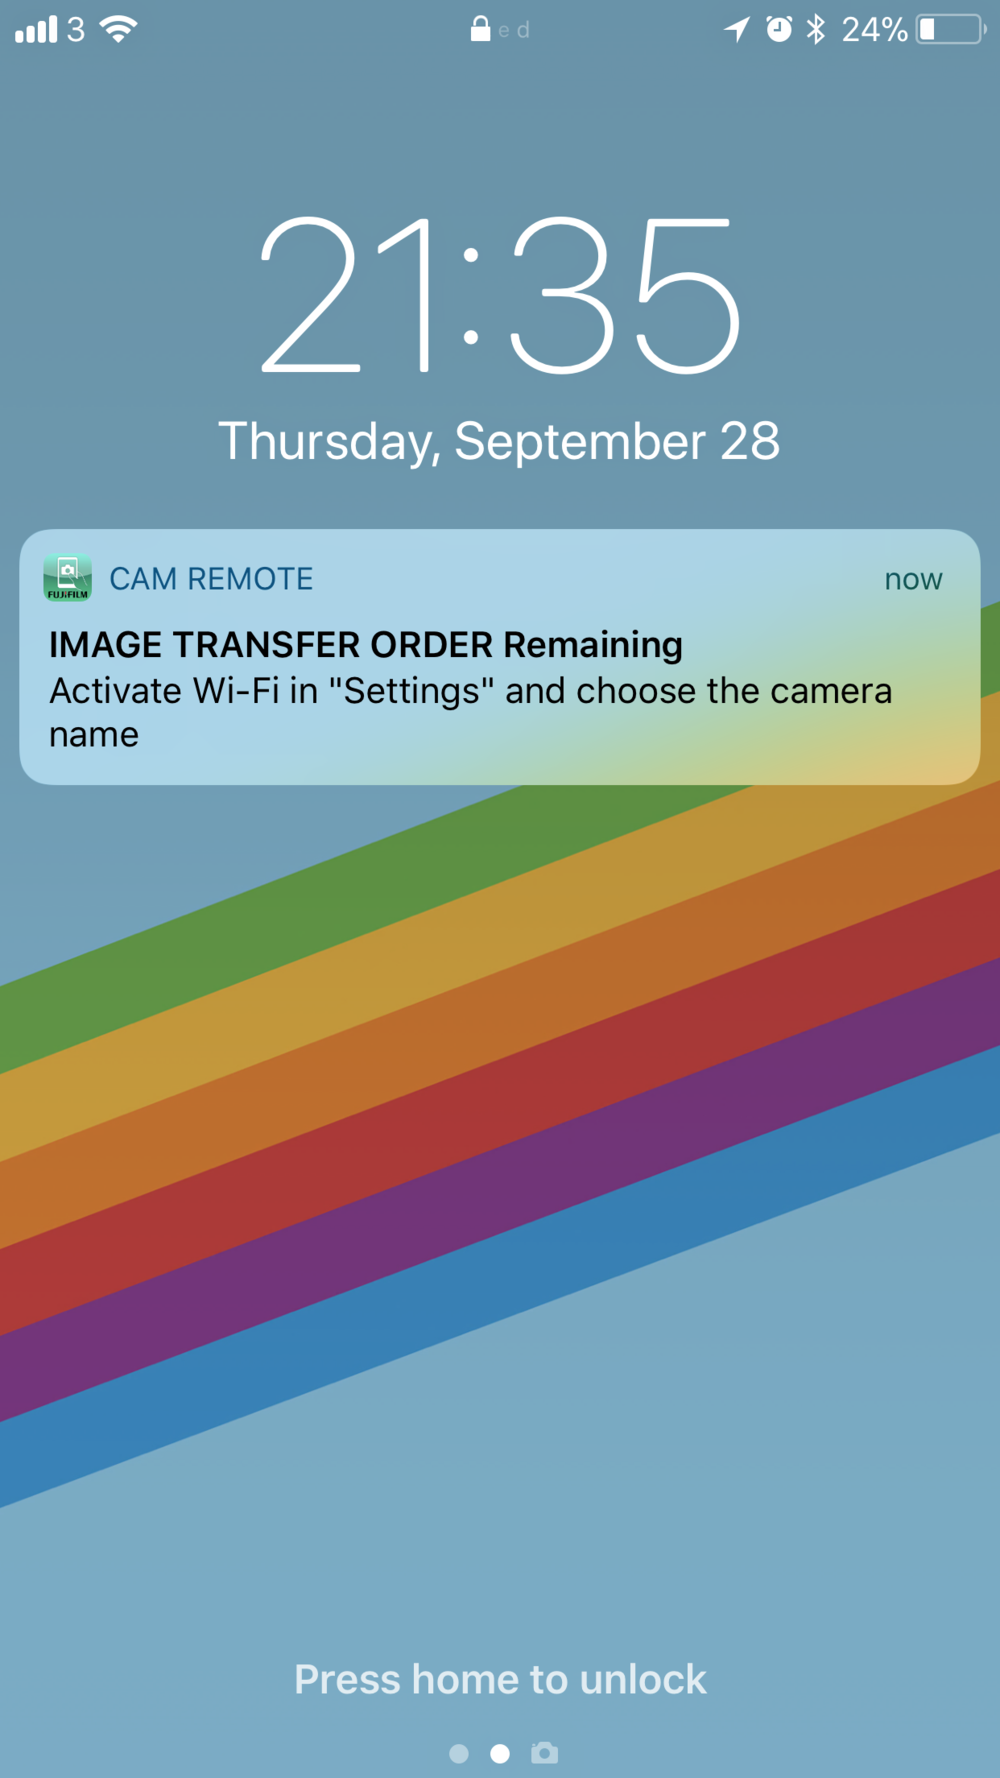 You also get a push notification on your phone reminding you to connect to the camera's wireless network.